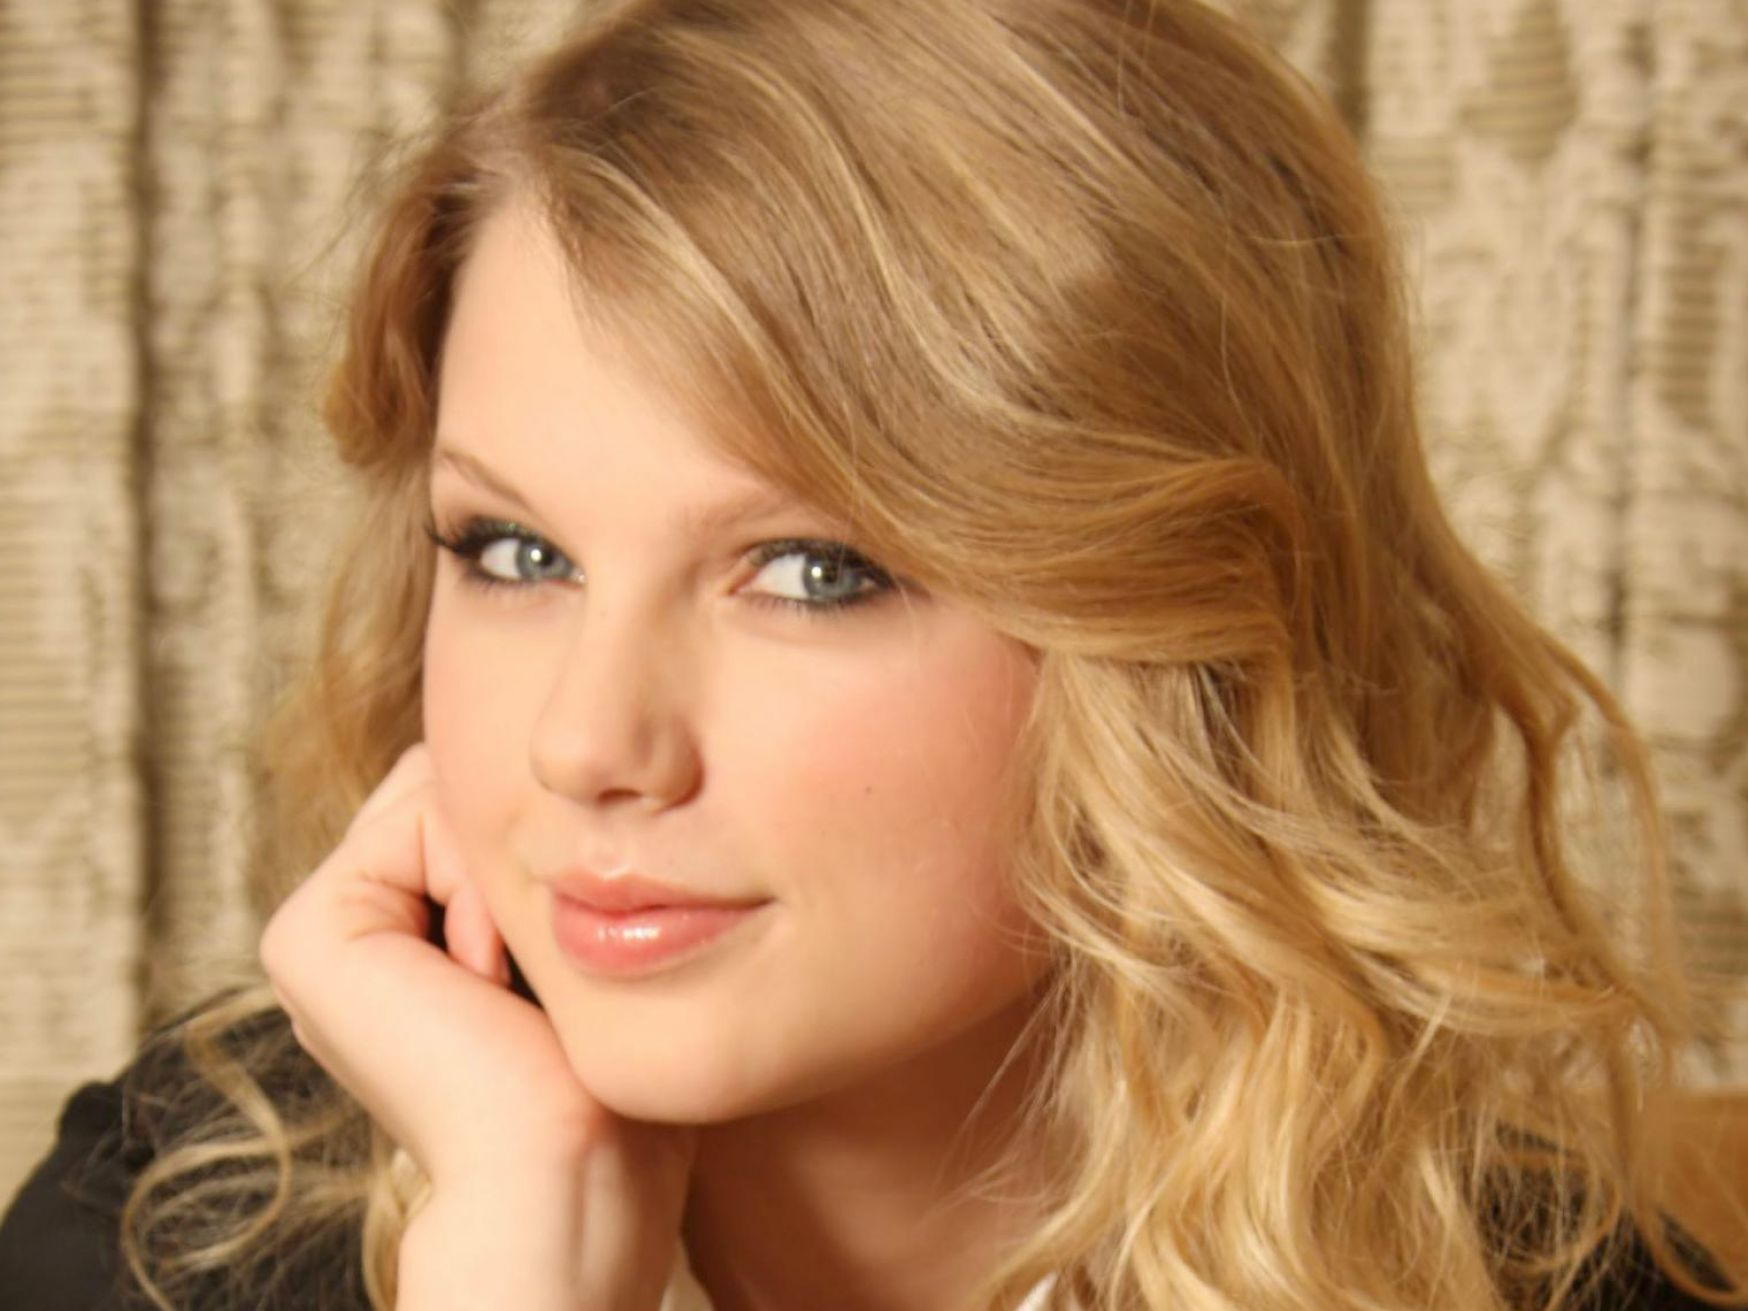 Taylor swift wallpaper for phone pictures 3